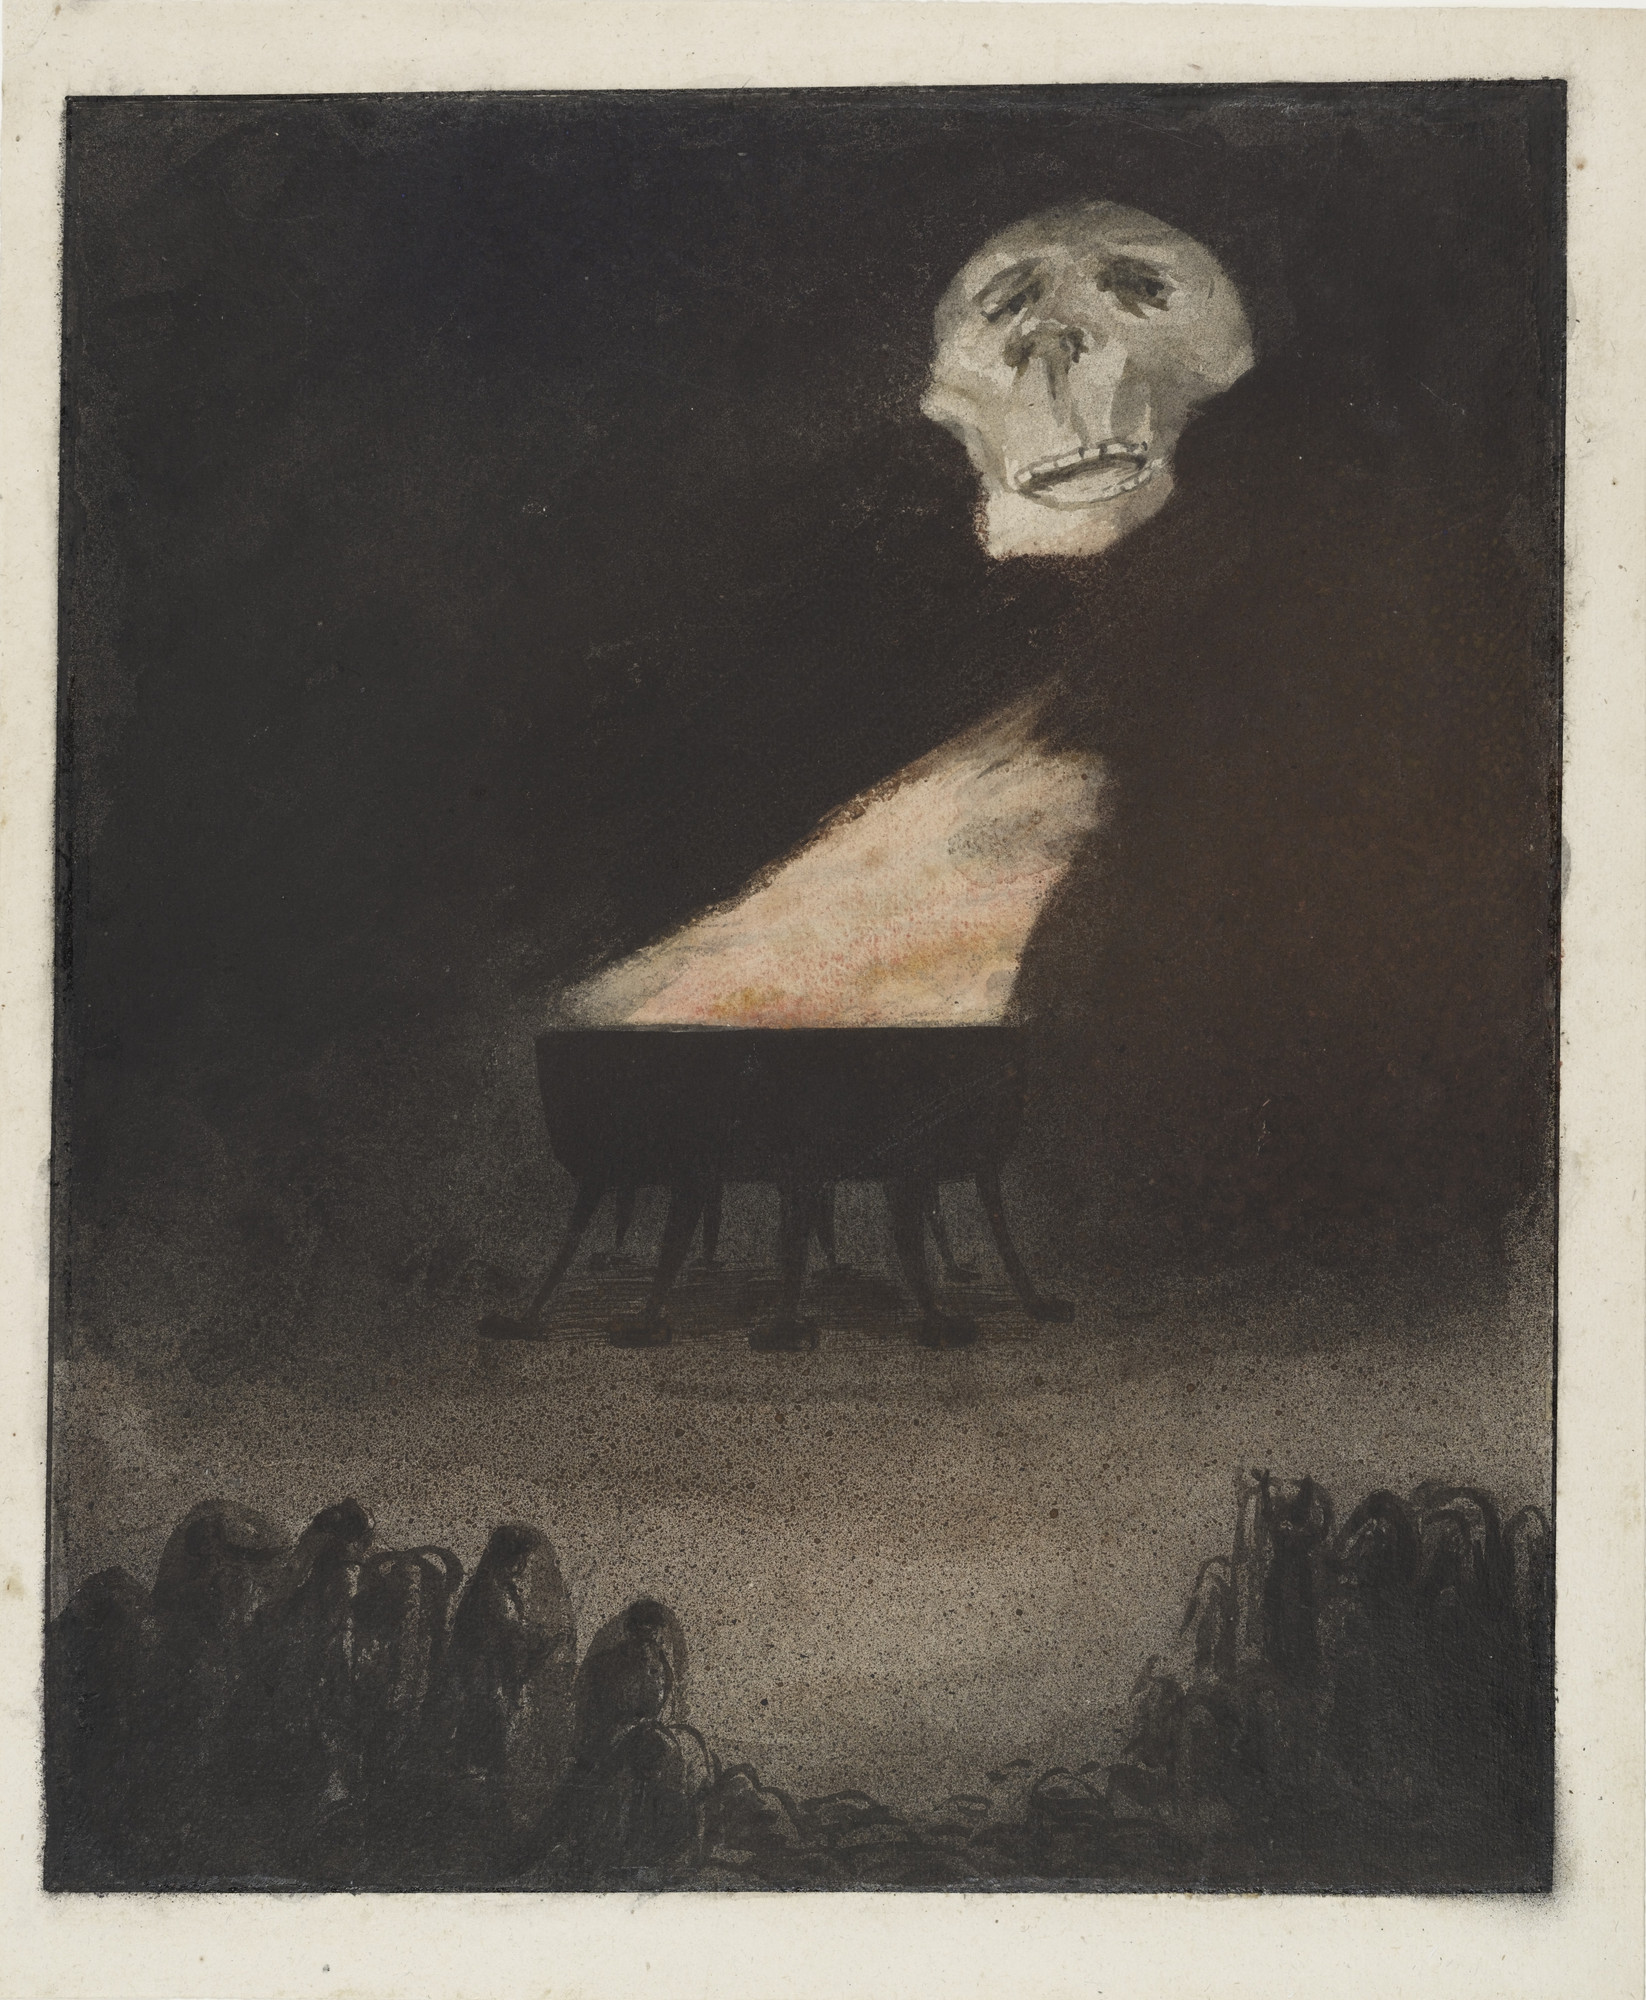 Alfred Kubin. Untitled (The Eternal Flame) (Ohne Titel [Die ewige Flamme]). c. 1900